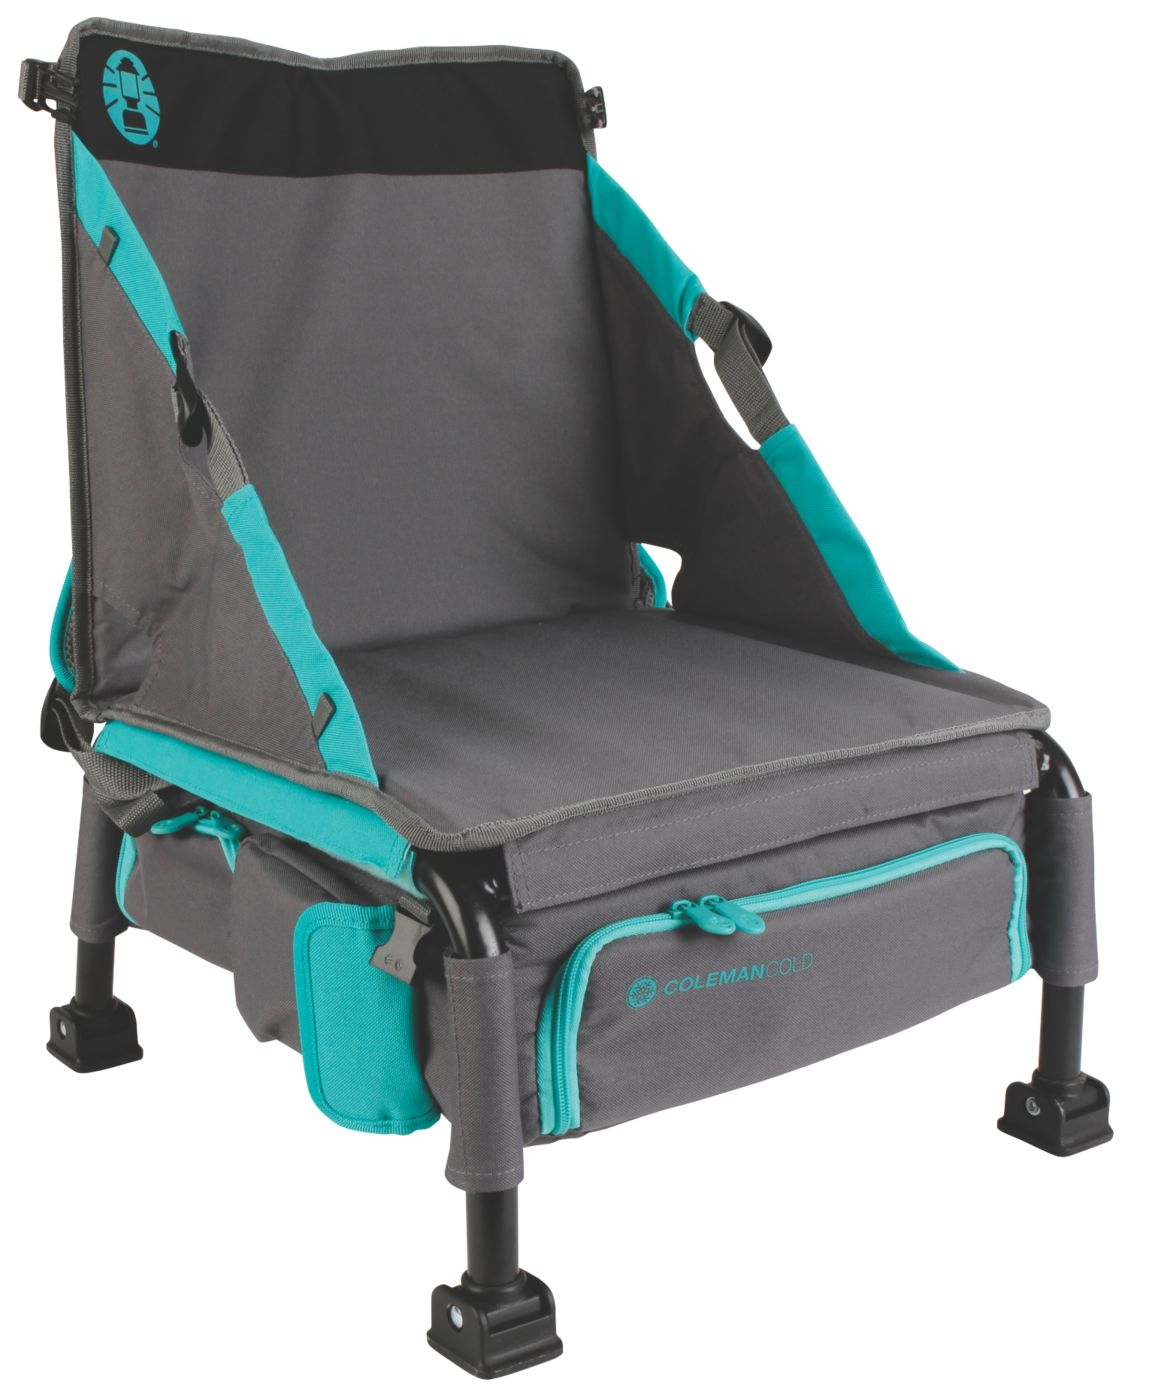 ... Treklite%E2%84%A2 Plus Coolerpack Chair ...